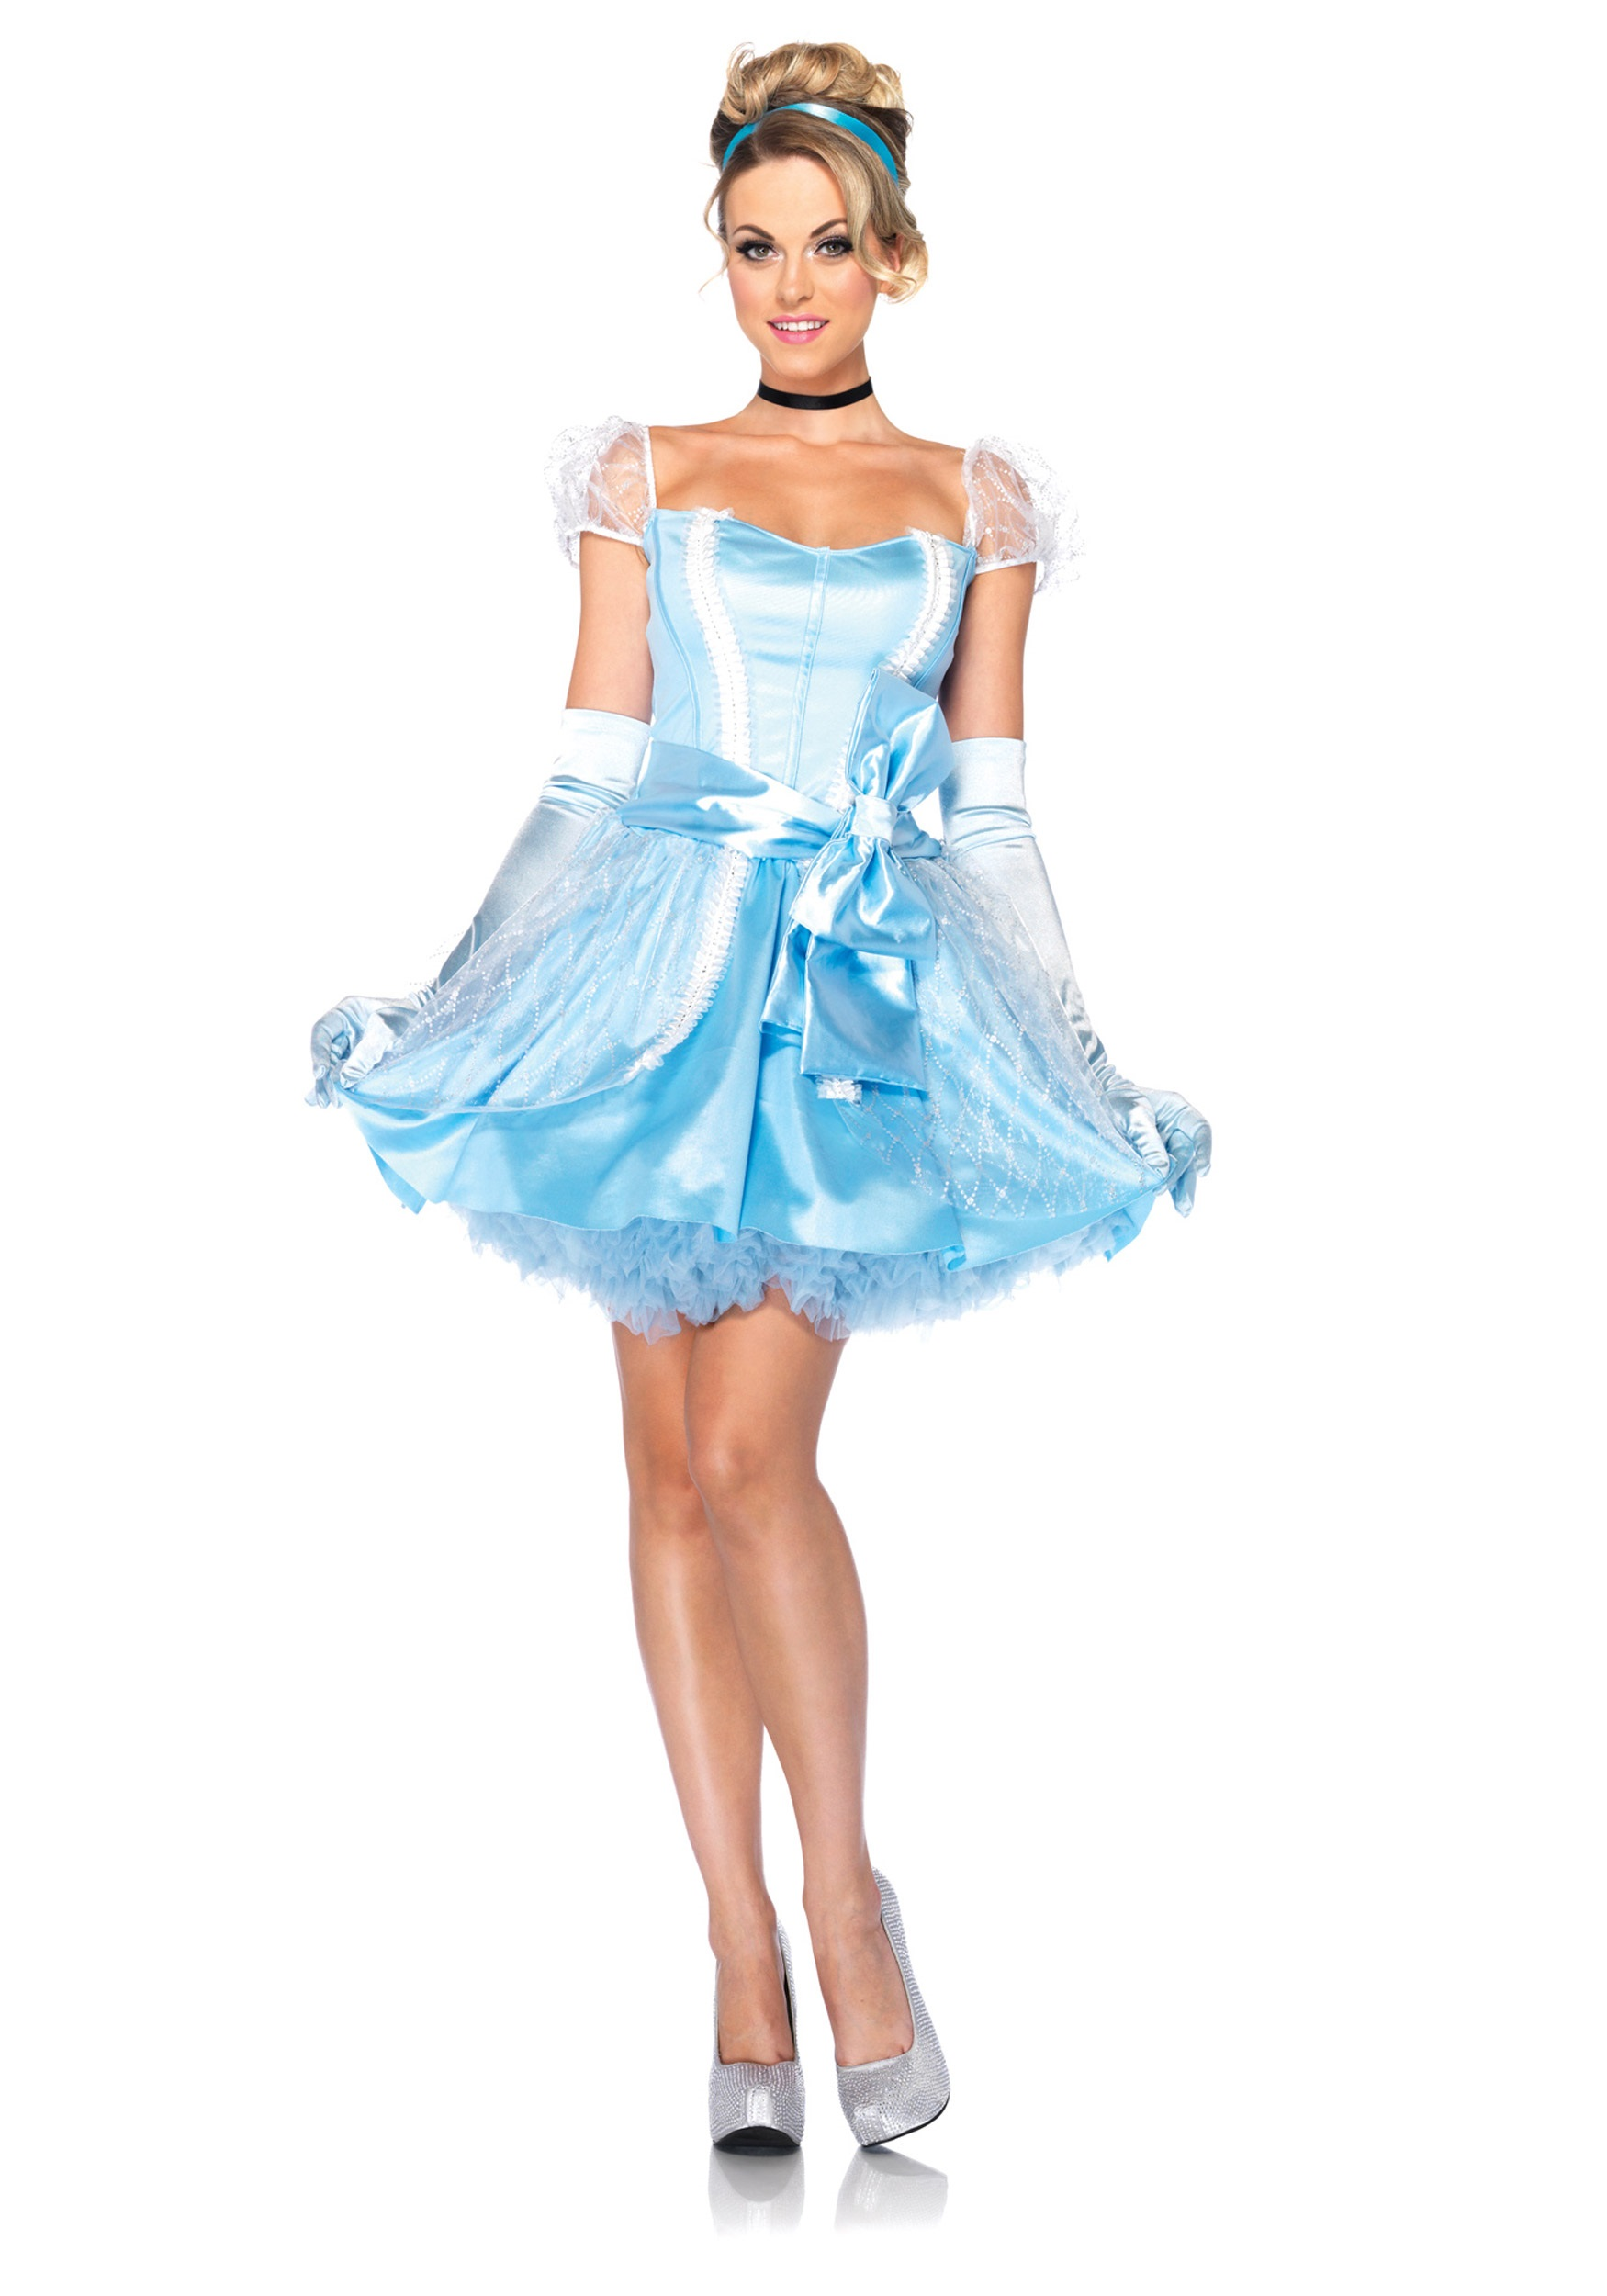 Cinderella costume for teen erotic movies foto galleries Breast cancer surgery epigastric vessels